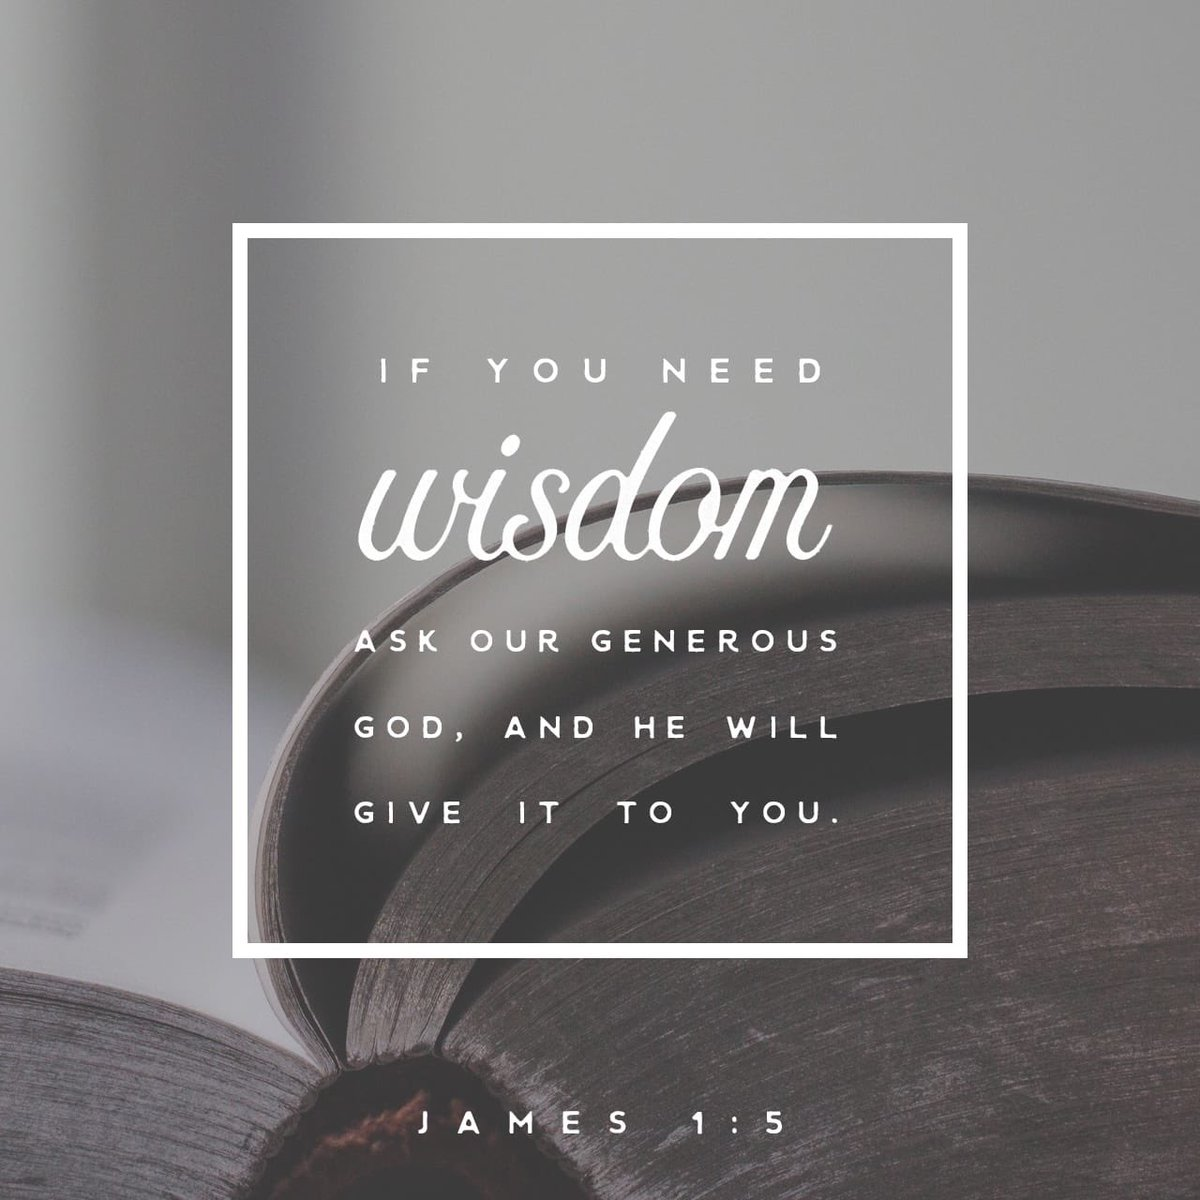 If any of you lacks wisdom, you should ask God, who gives generously to all without finding fault, and it will be given to you. James 1:5 NIV https://t.co/BXcLZvzDom https://t.co/bFcOwMeGqP